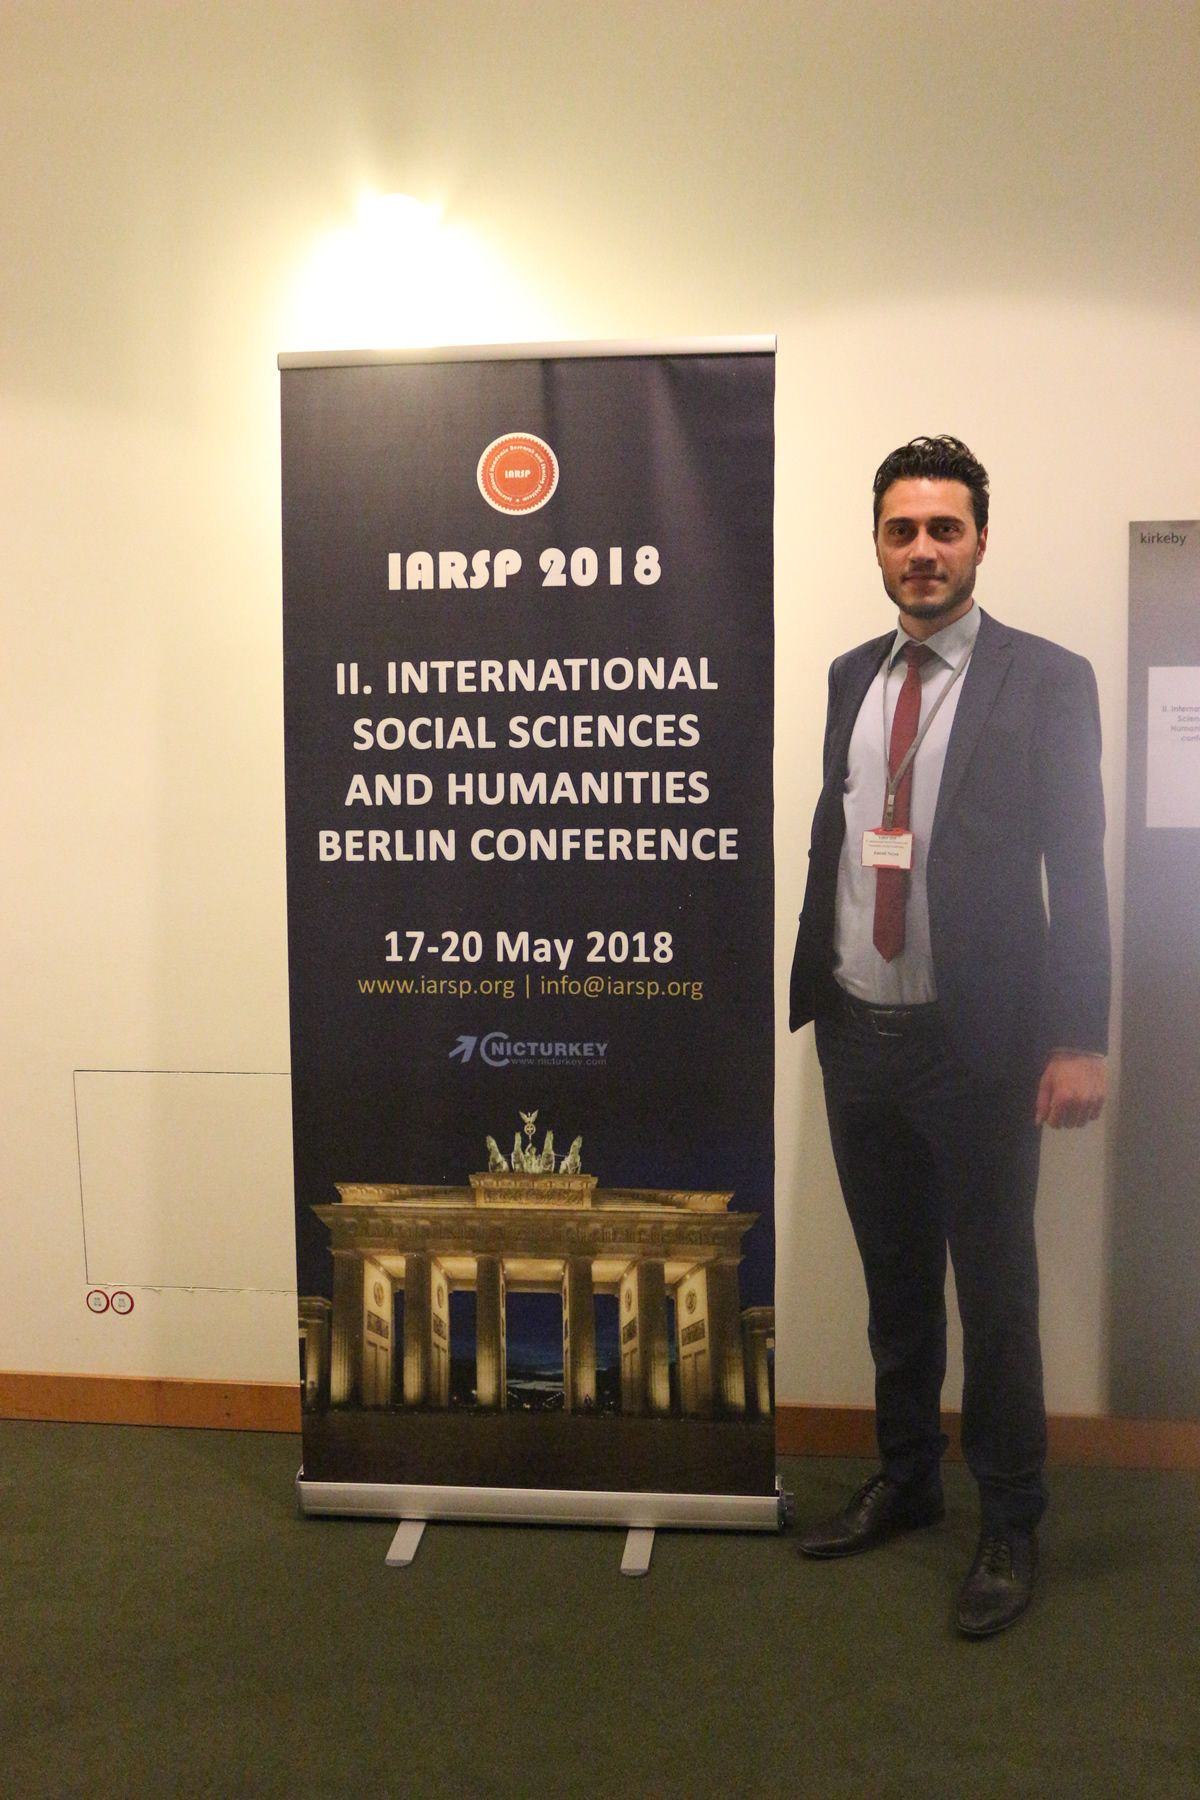 II. Internationale Berliner Konferenz